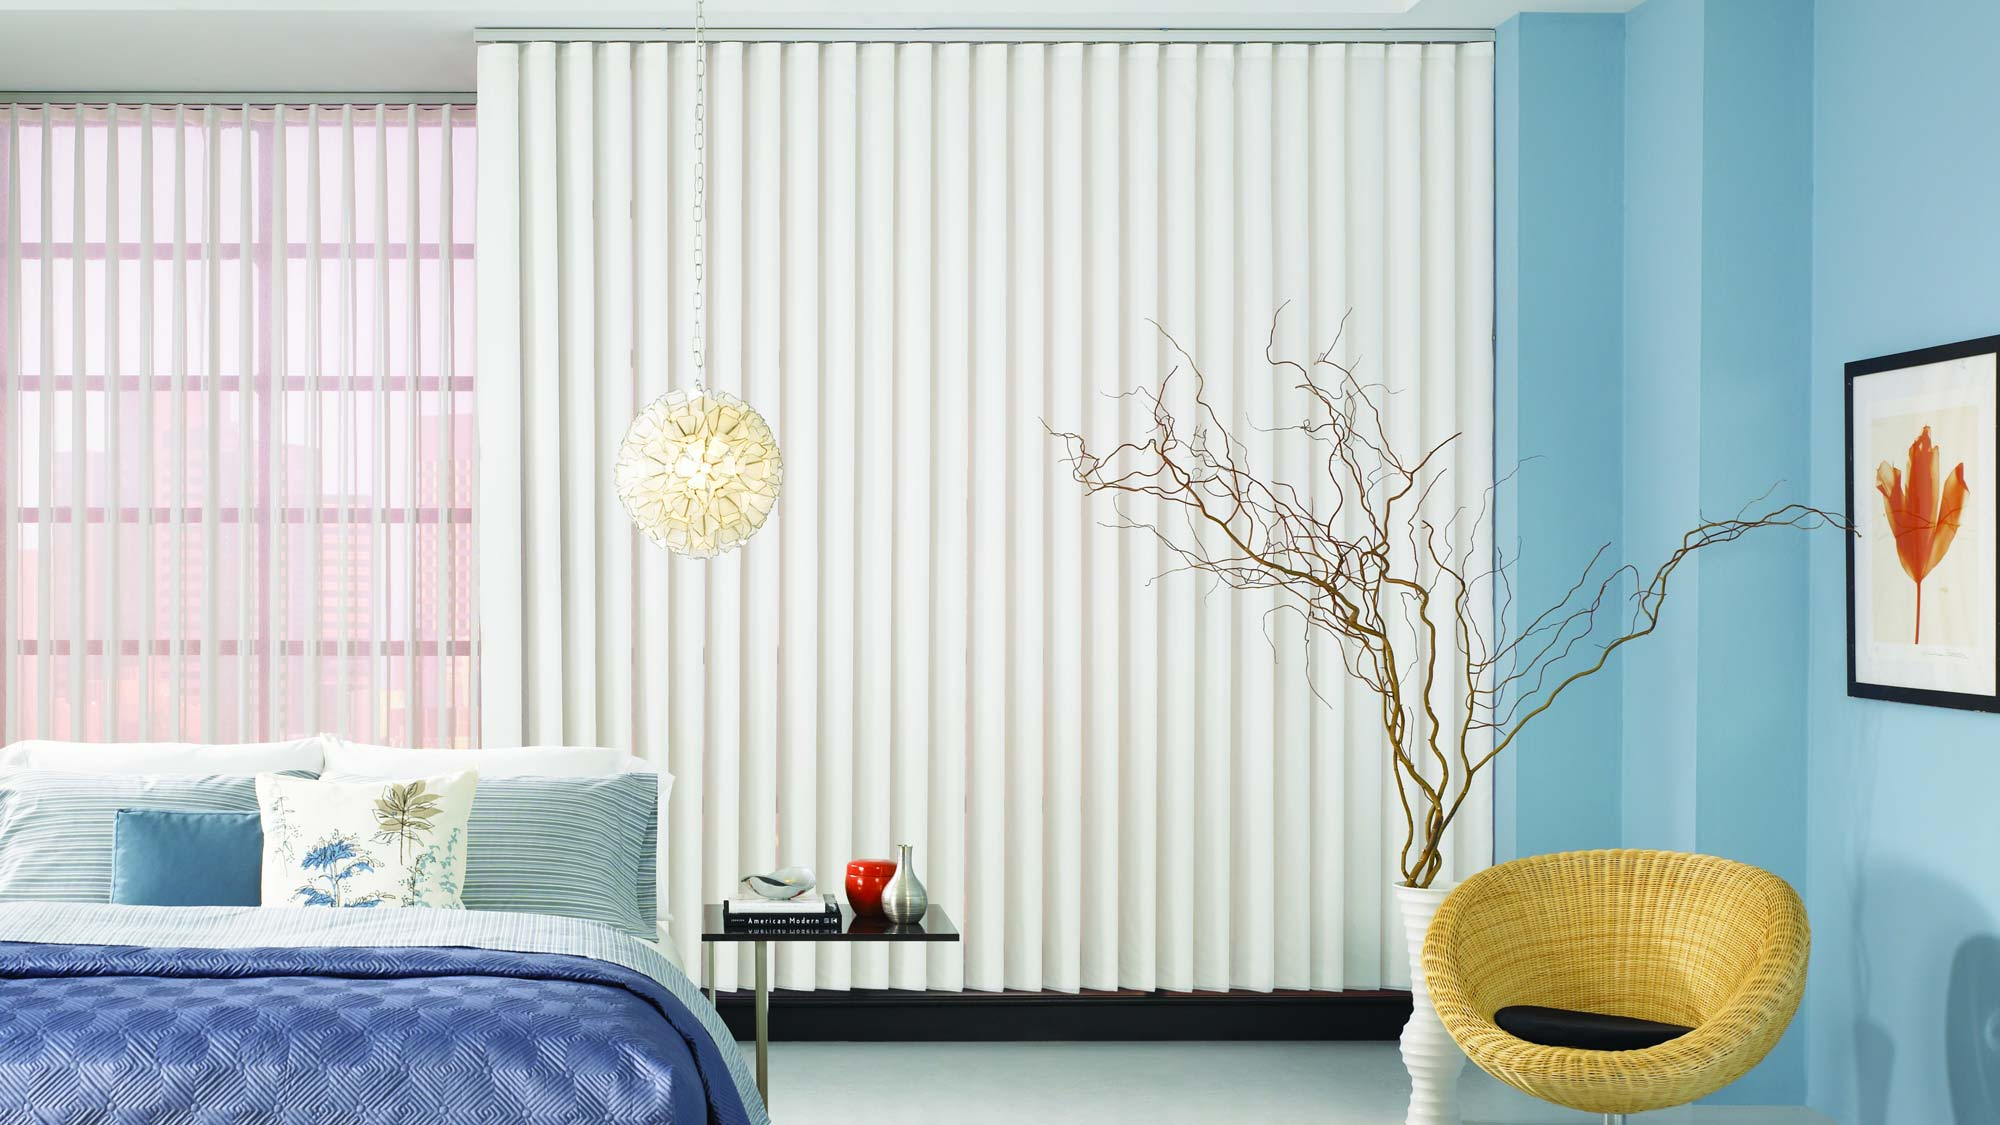 Vertical blinds and sheer fabric wrapped vertical blinds cover a large window in a room with blue walls and bedding.